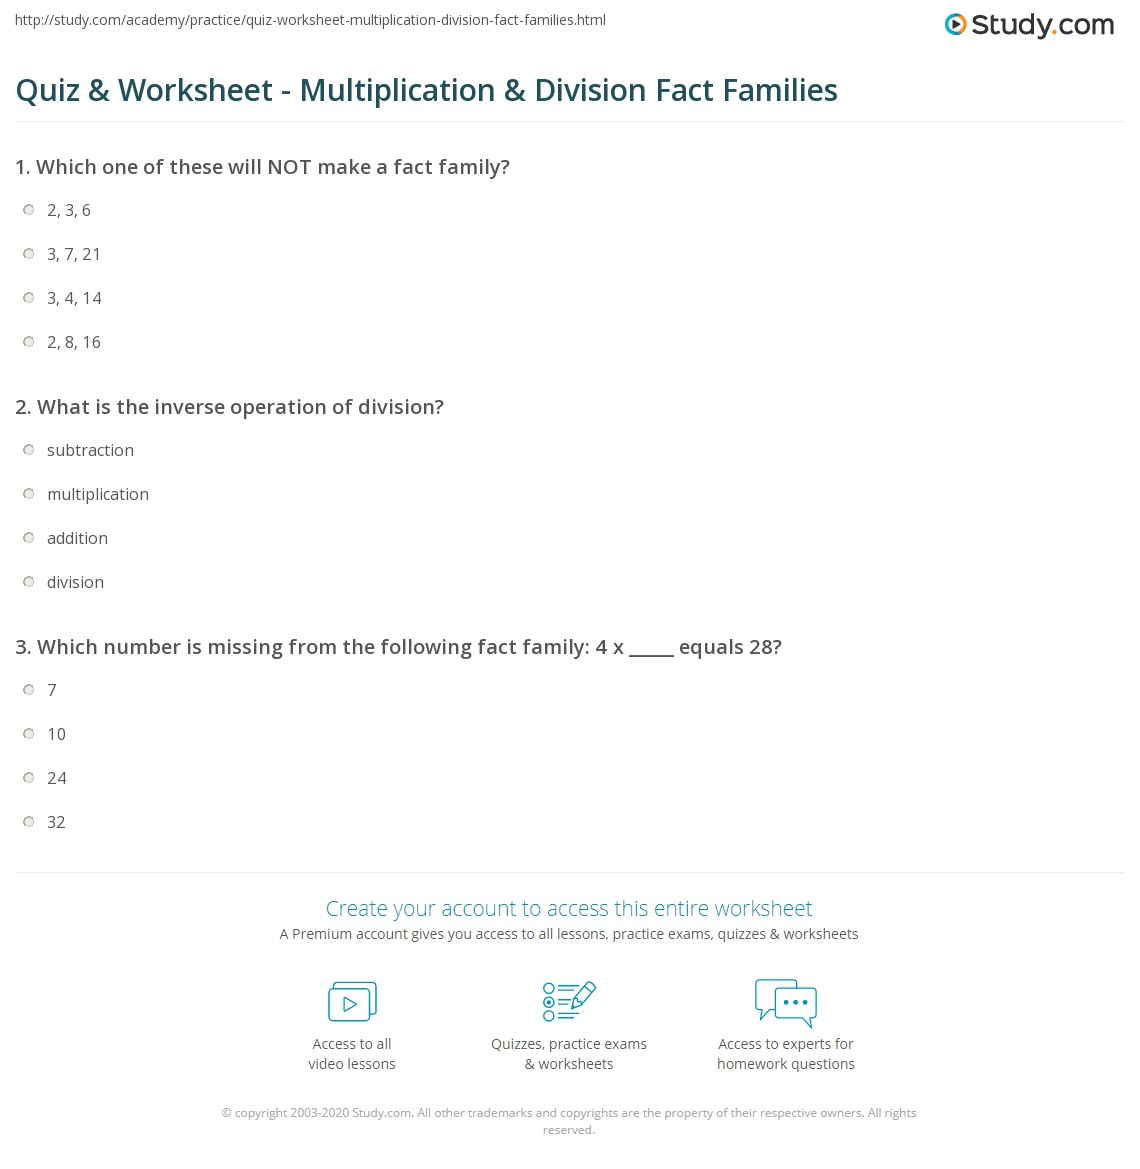 Quiz Worksheet Multiplication Division Fact Families Study